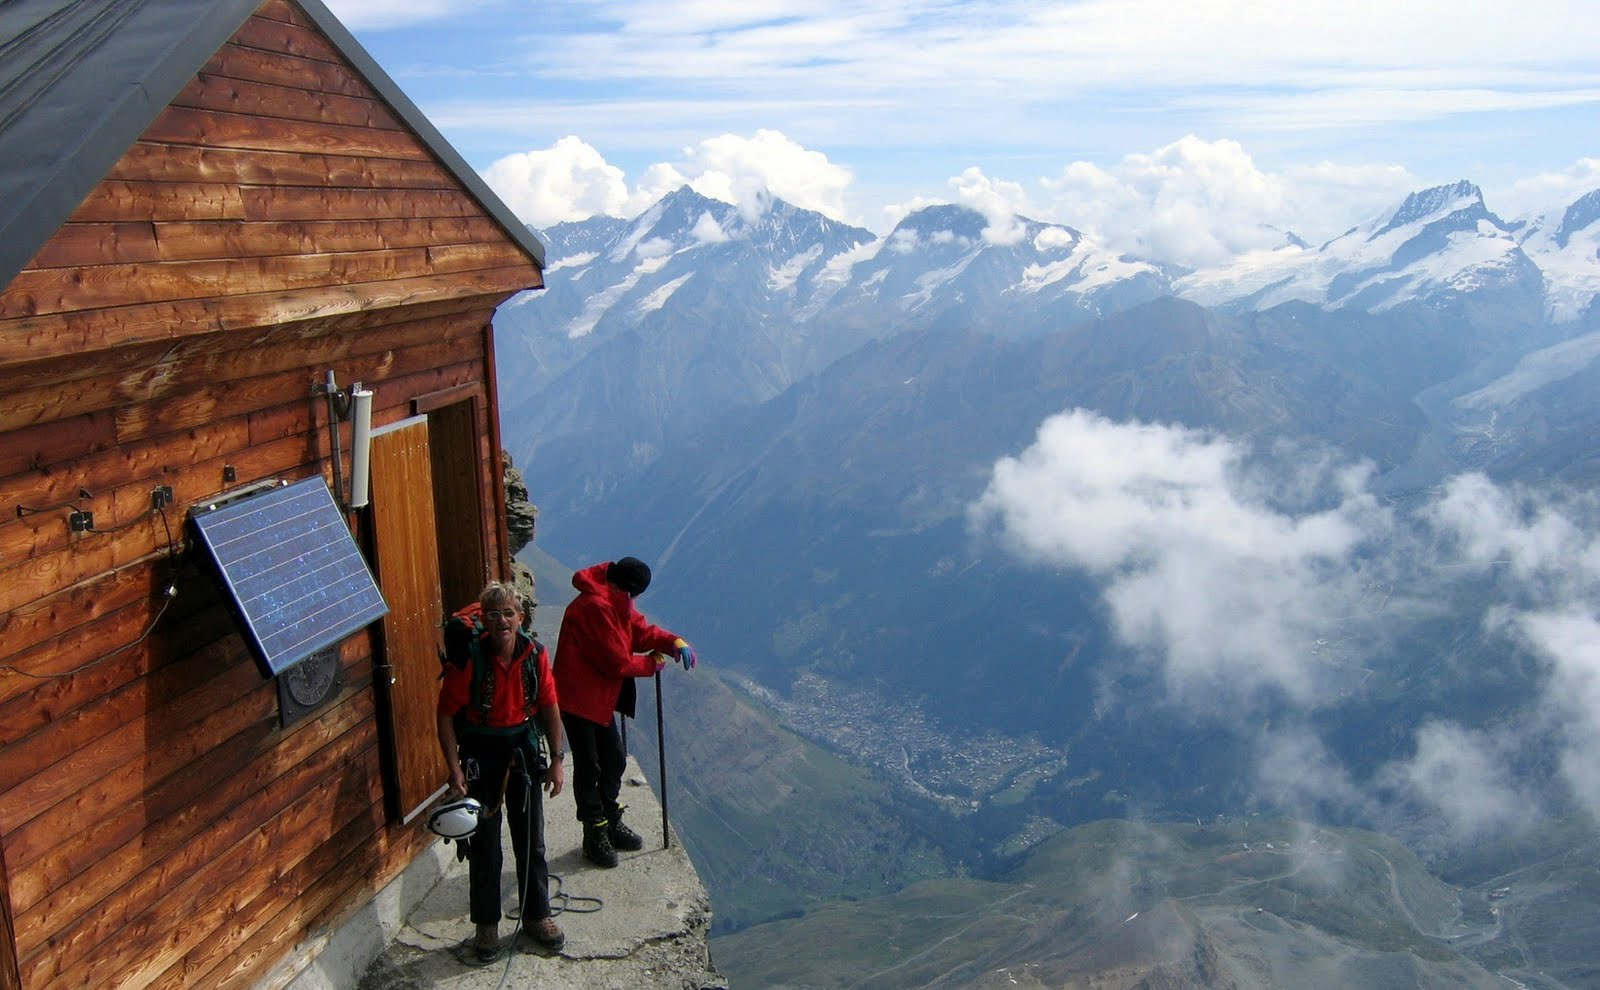 Picture of 2 men standing outside a mountain hut with a 3-foot ledge outside the front door.